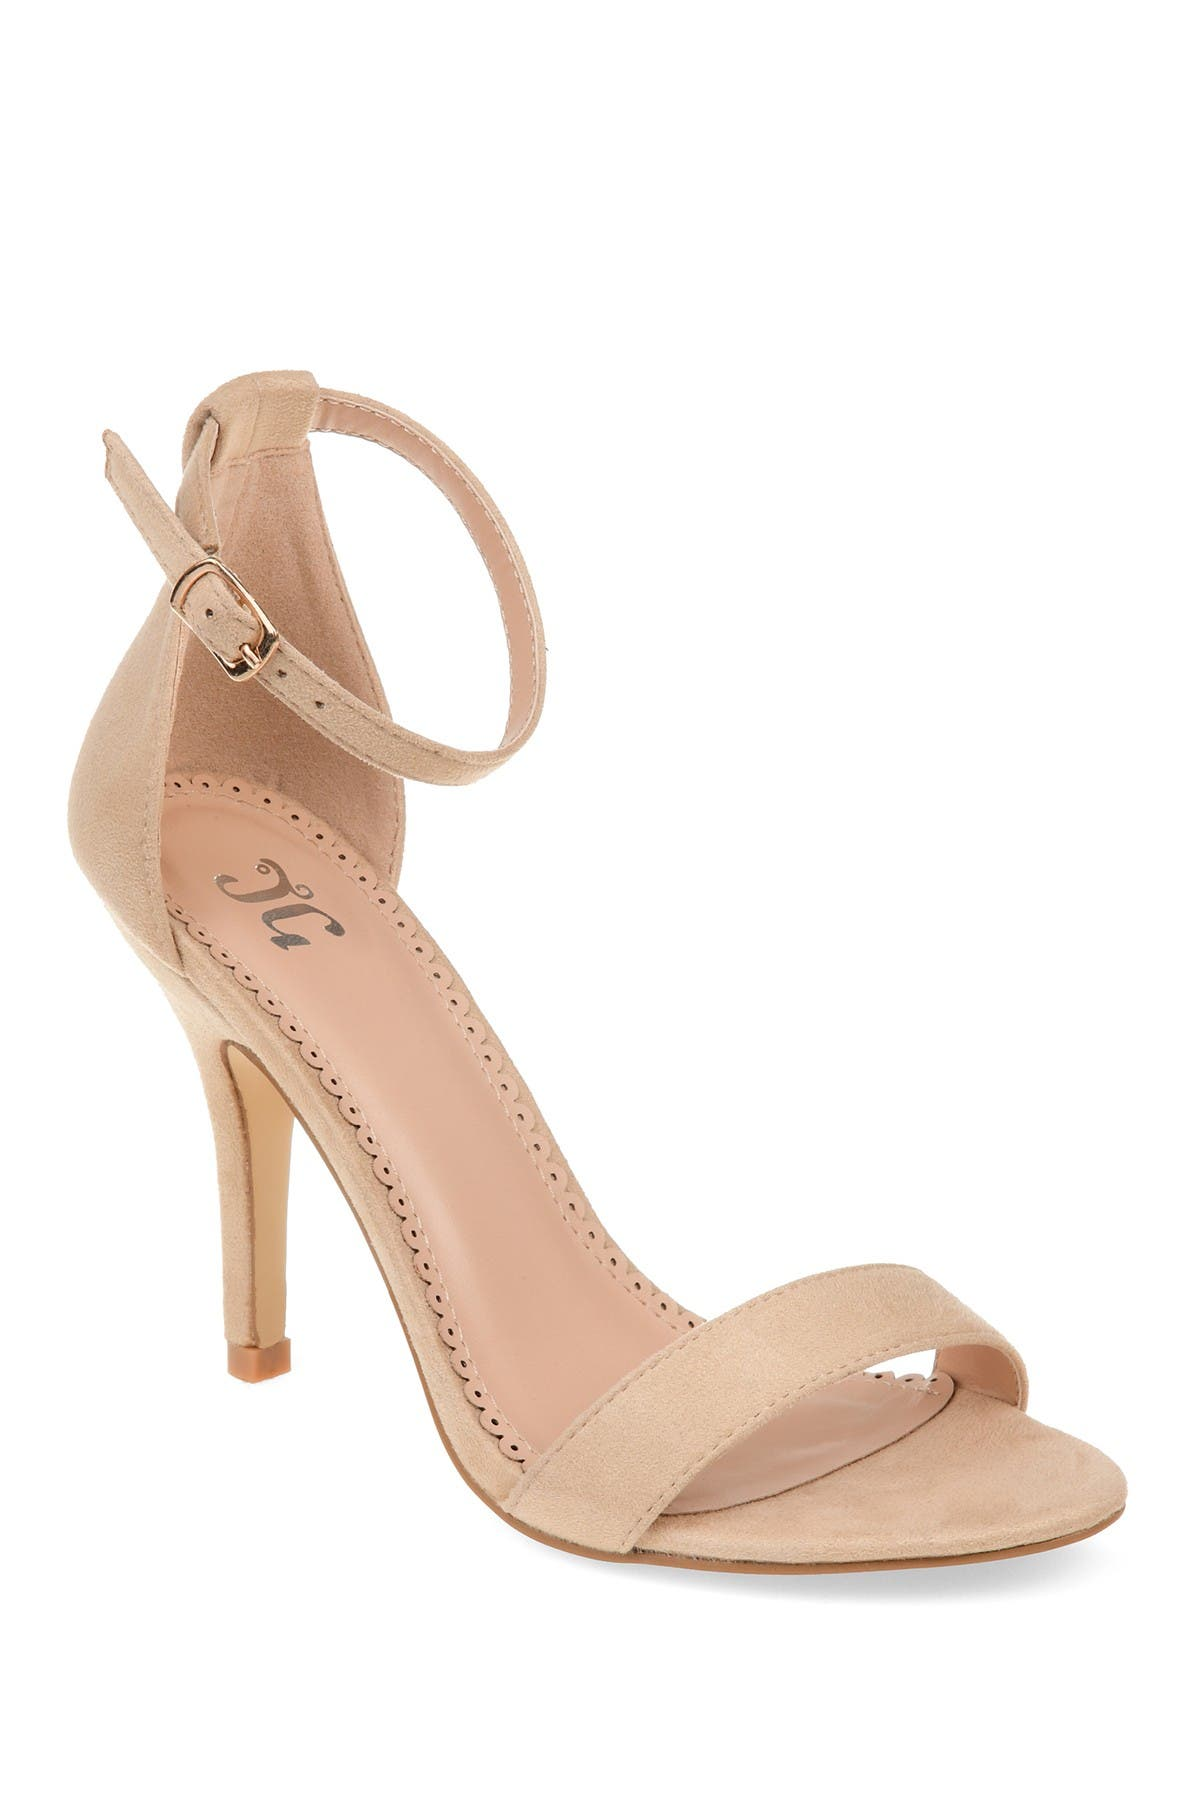 Image of JOURNEE Collection Polly Ankle Strap Pump